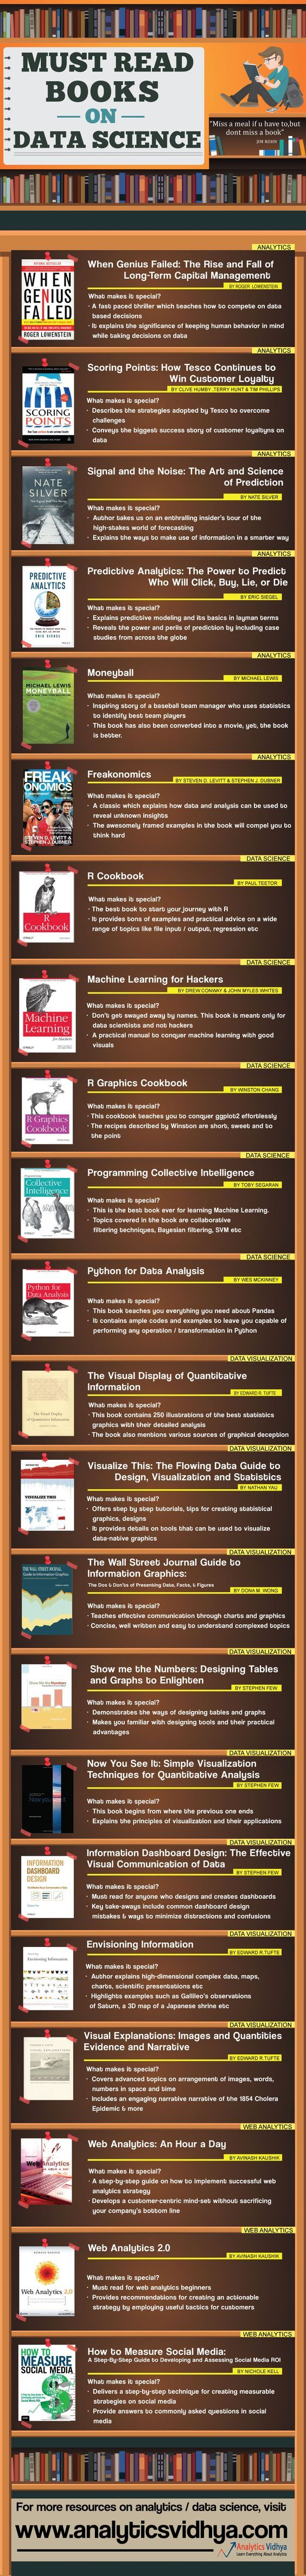 must read books in analytics, data science, business analytics for beginners